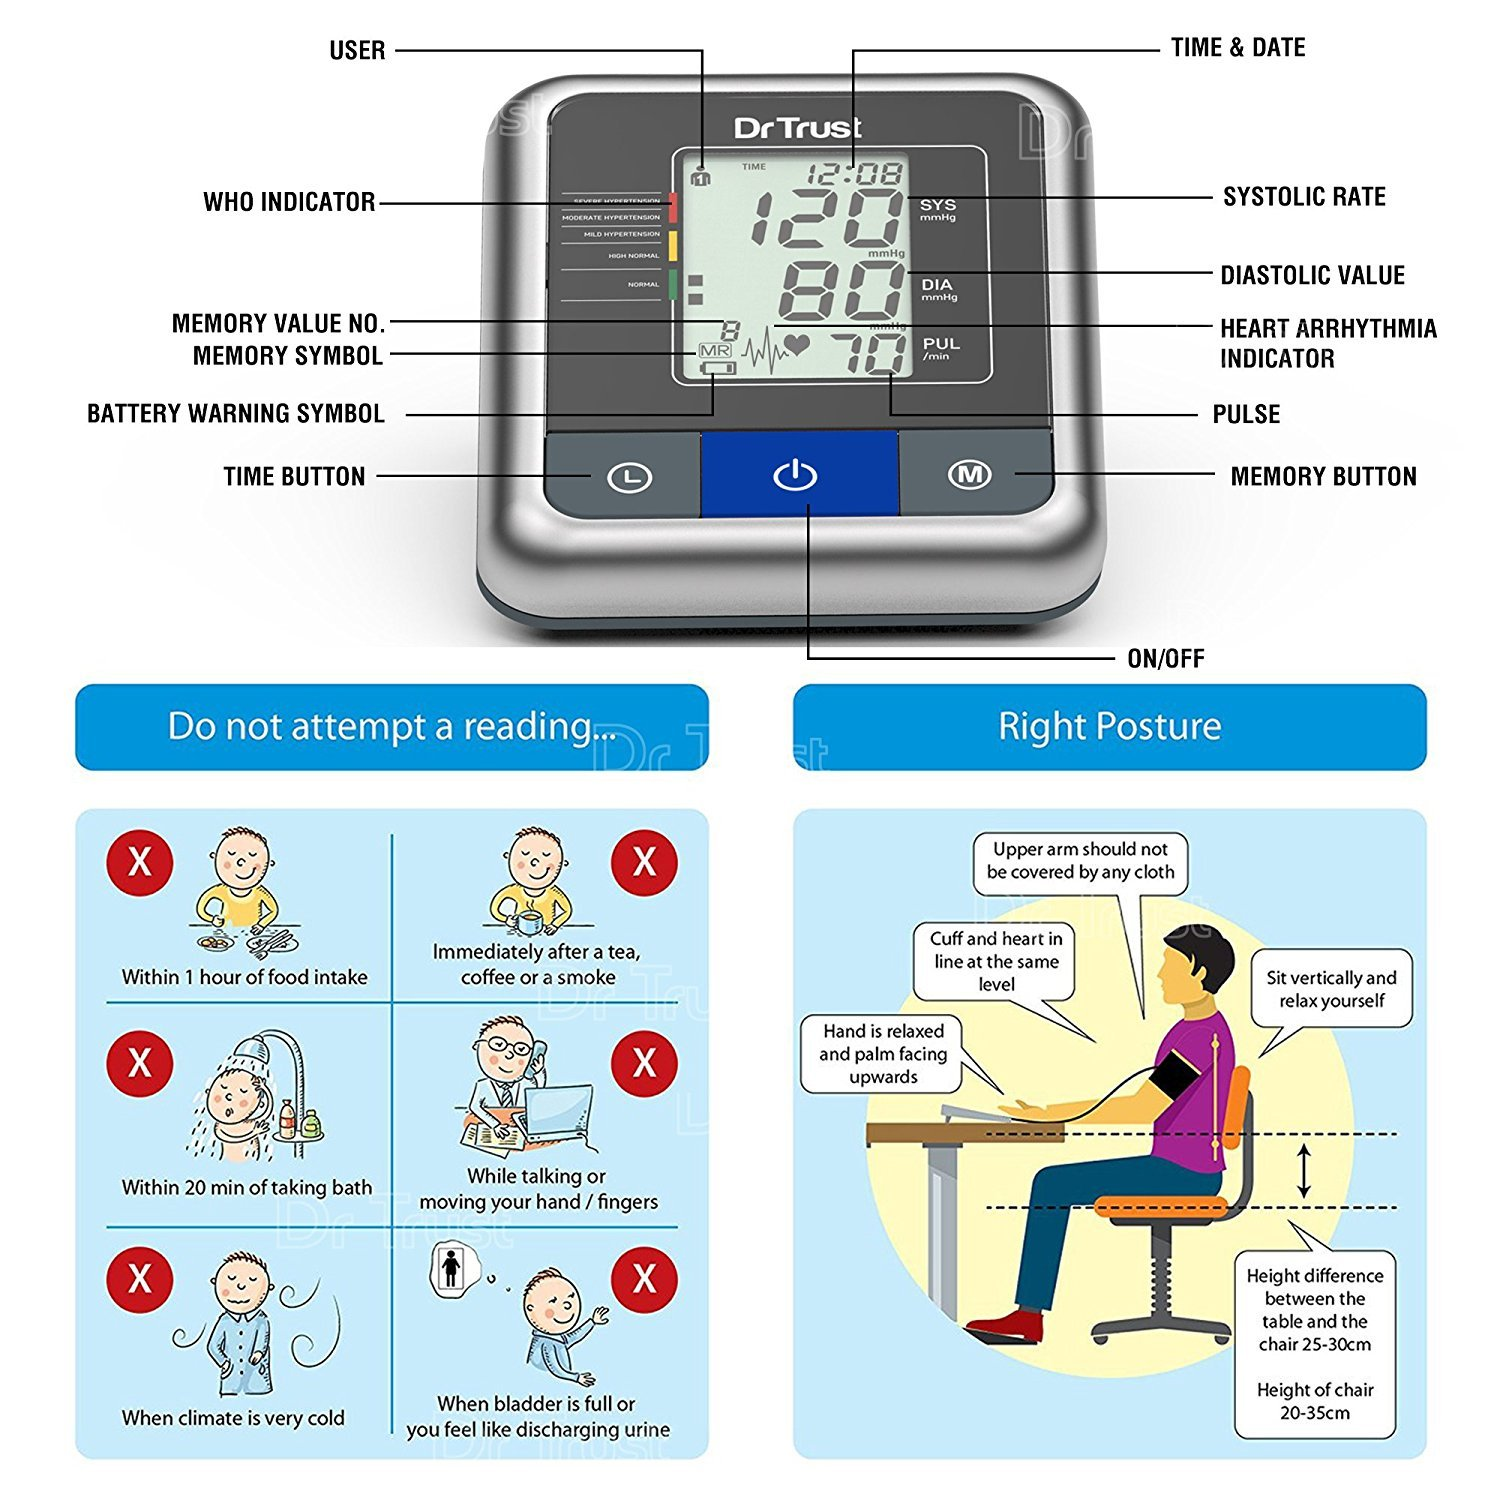 Dr. Trust (USA) A-One Max Hindi & English Dual Talking Digital Blood Pressure Monitor-162814